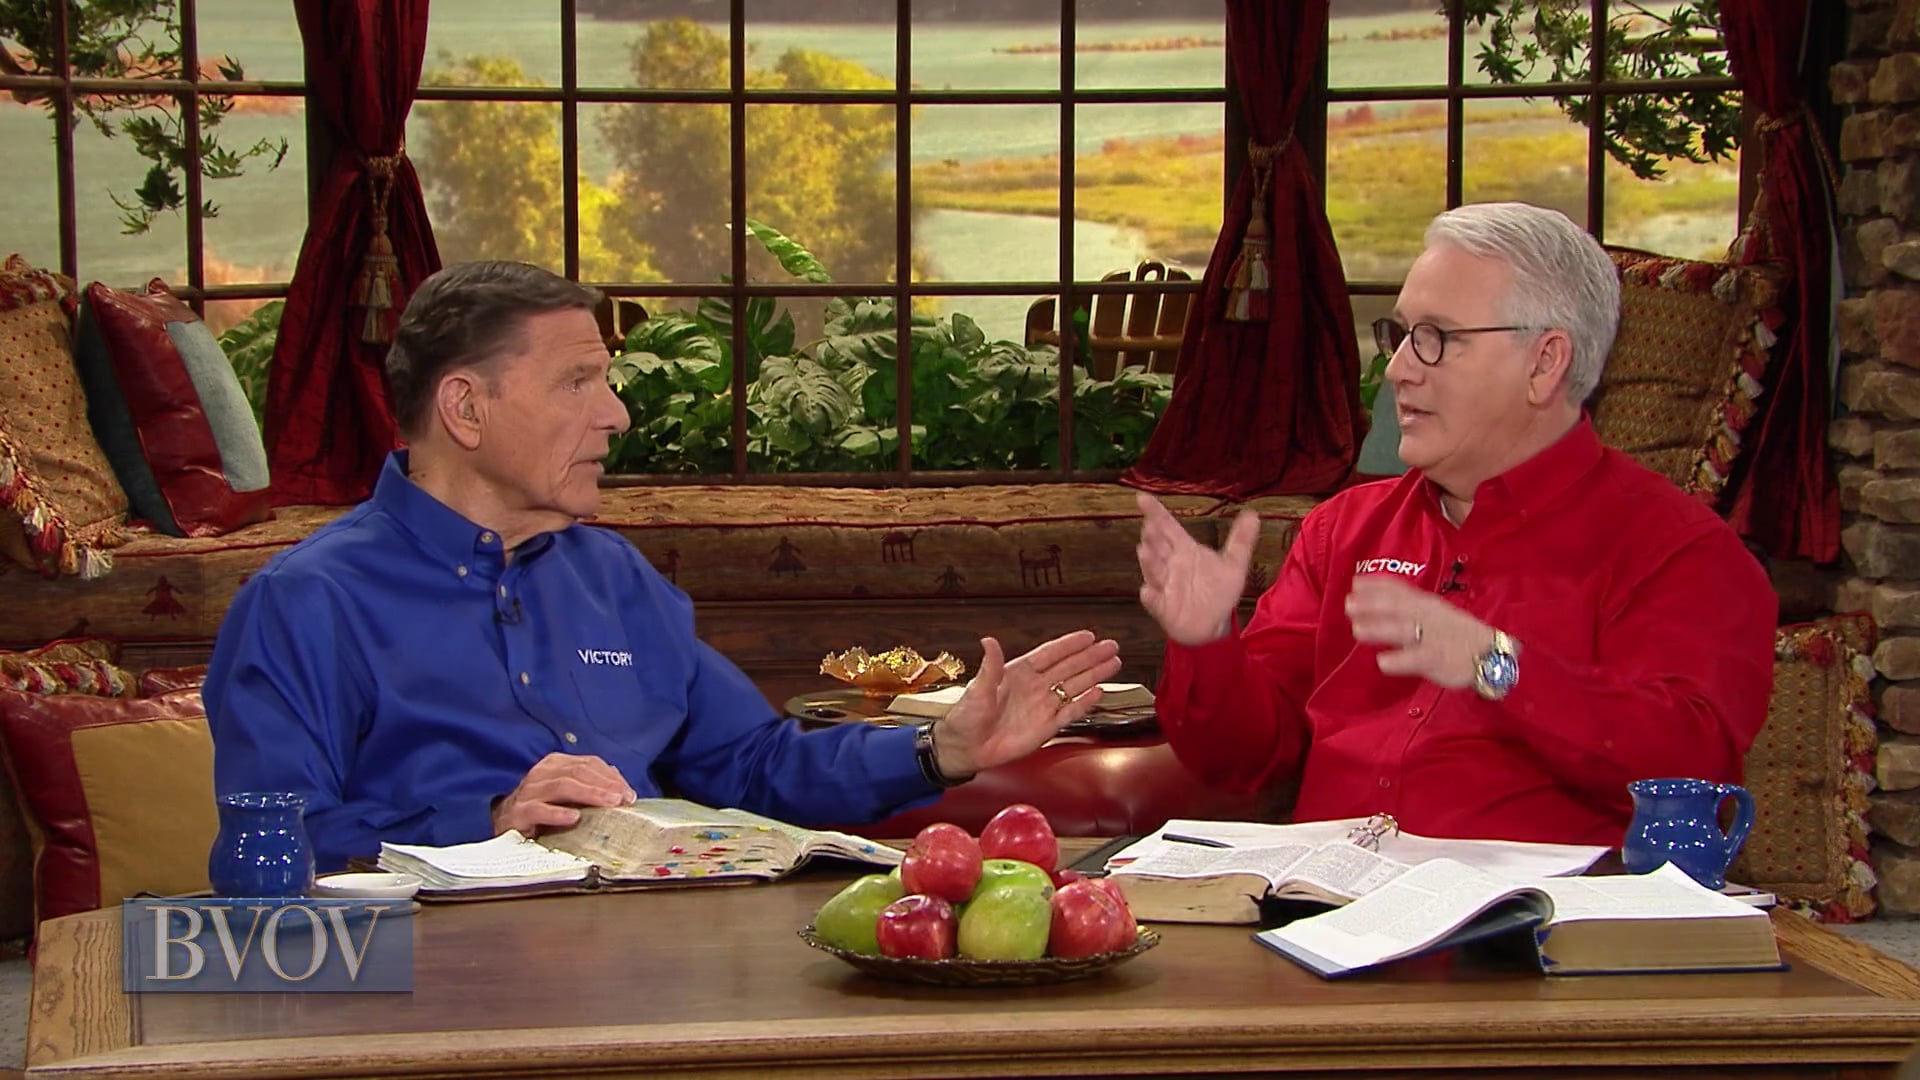 When does the judgment of God come? Join Kenneth Copeland and Professor Greg Stephens on Believer's Voice of Victory as they explain why judgment comes when the cup of iniquity is full. Learn from the story of Noah why God delays, what causes God to finally respond to the sins of the world, and how it relates to us today.